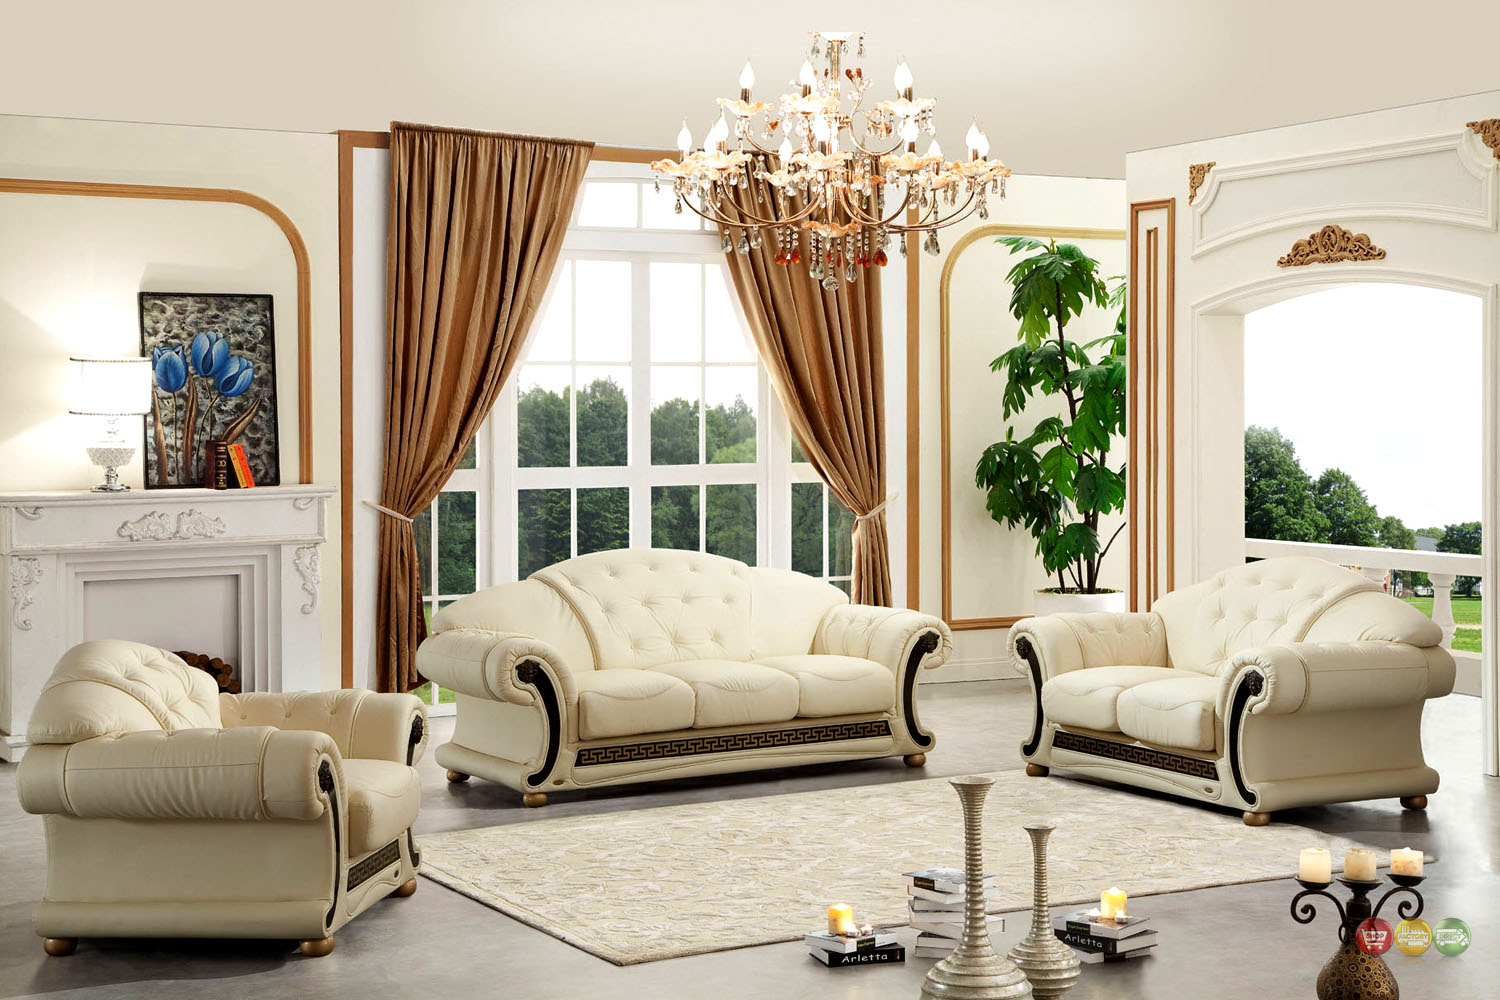 cleopatra cream italian top grain leather beige living room sofa set